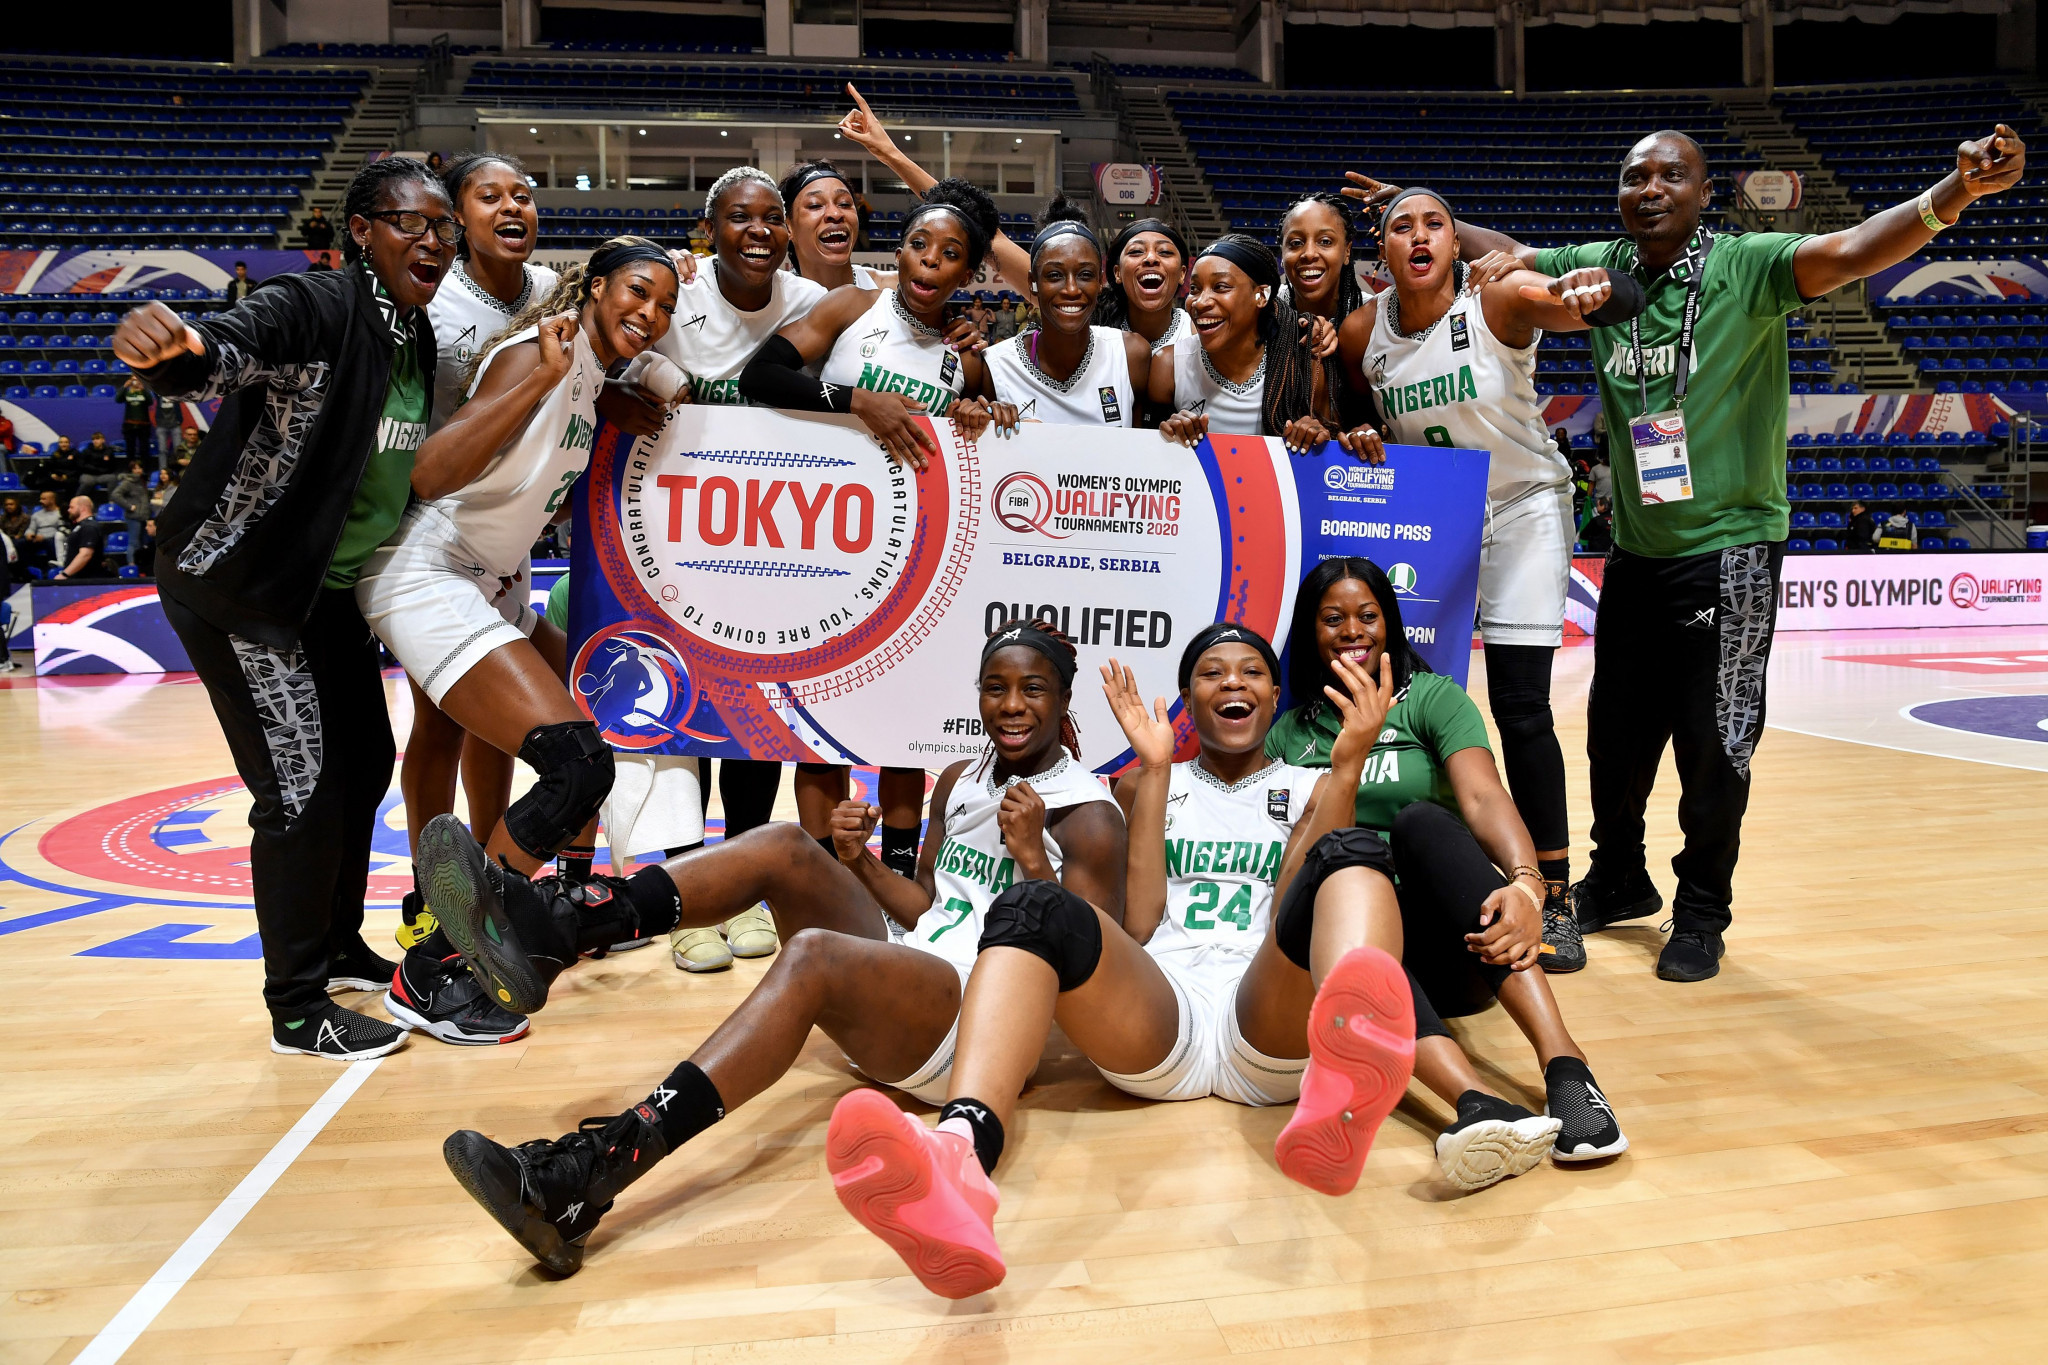 The Nigerian women's basketball team qualified for the Tokyo 2020 Olympic Games in February ©Getty Images